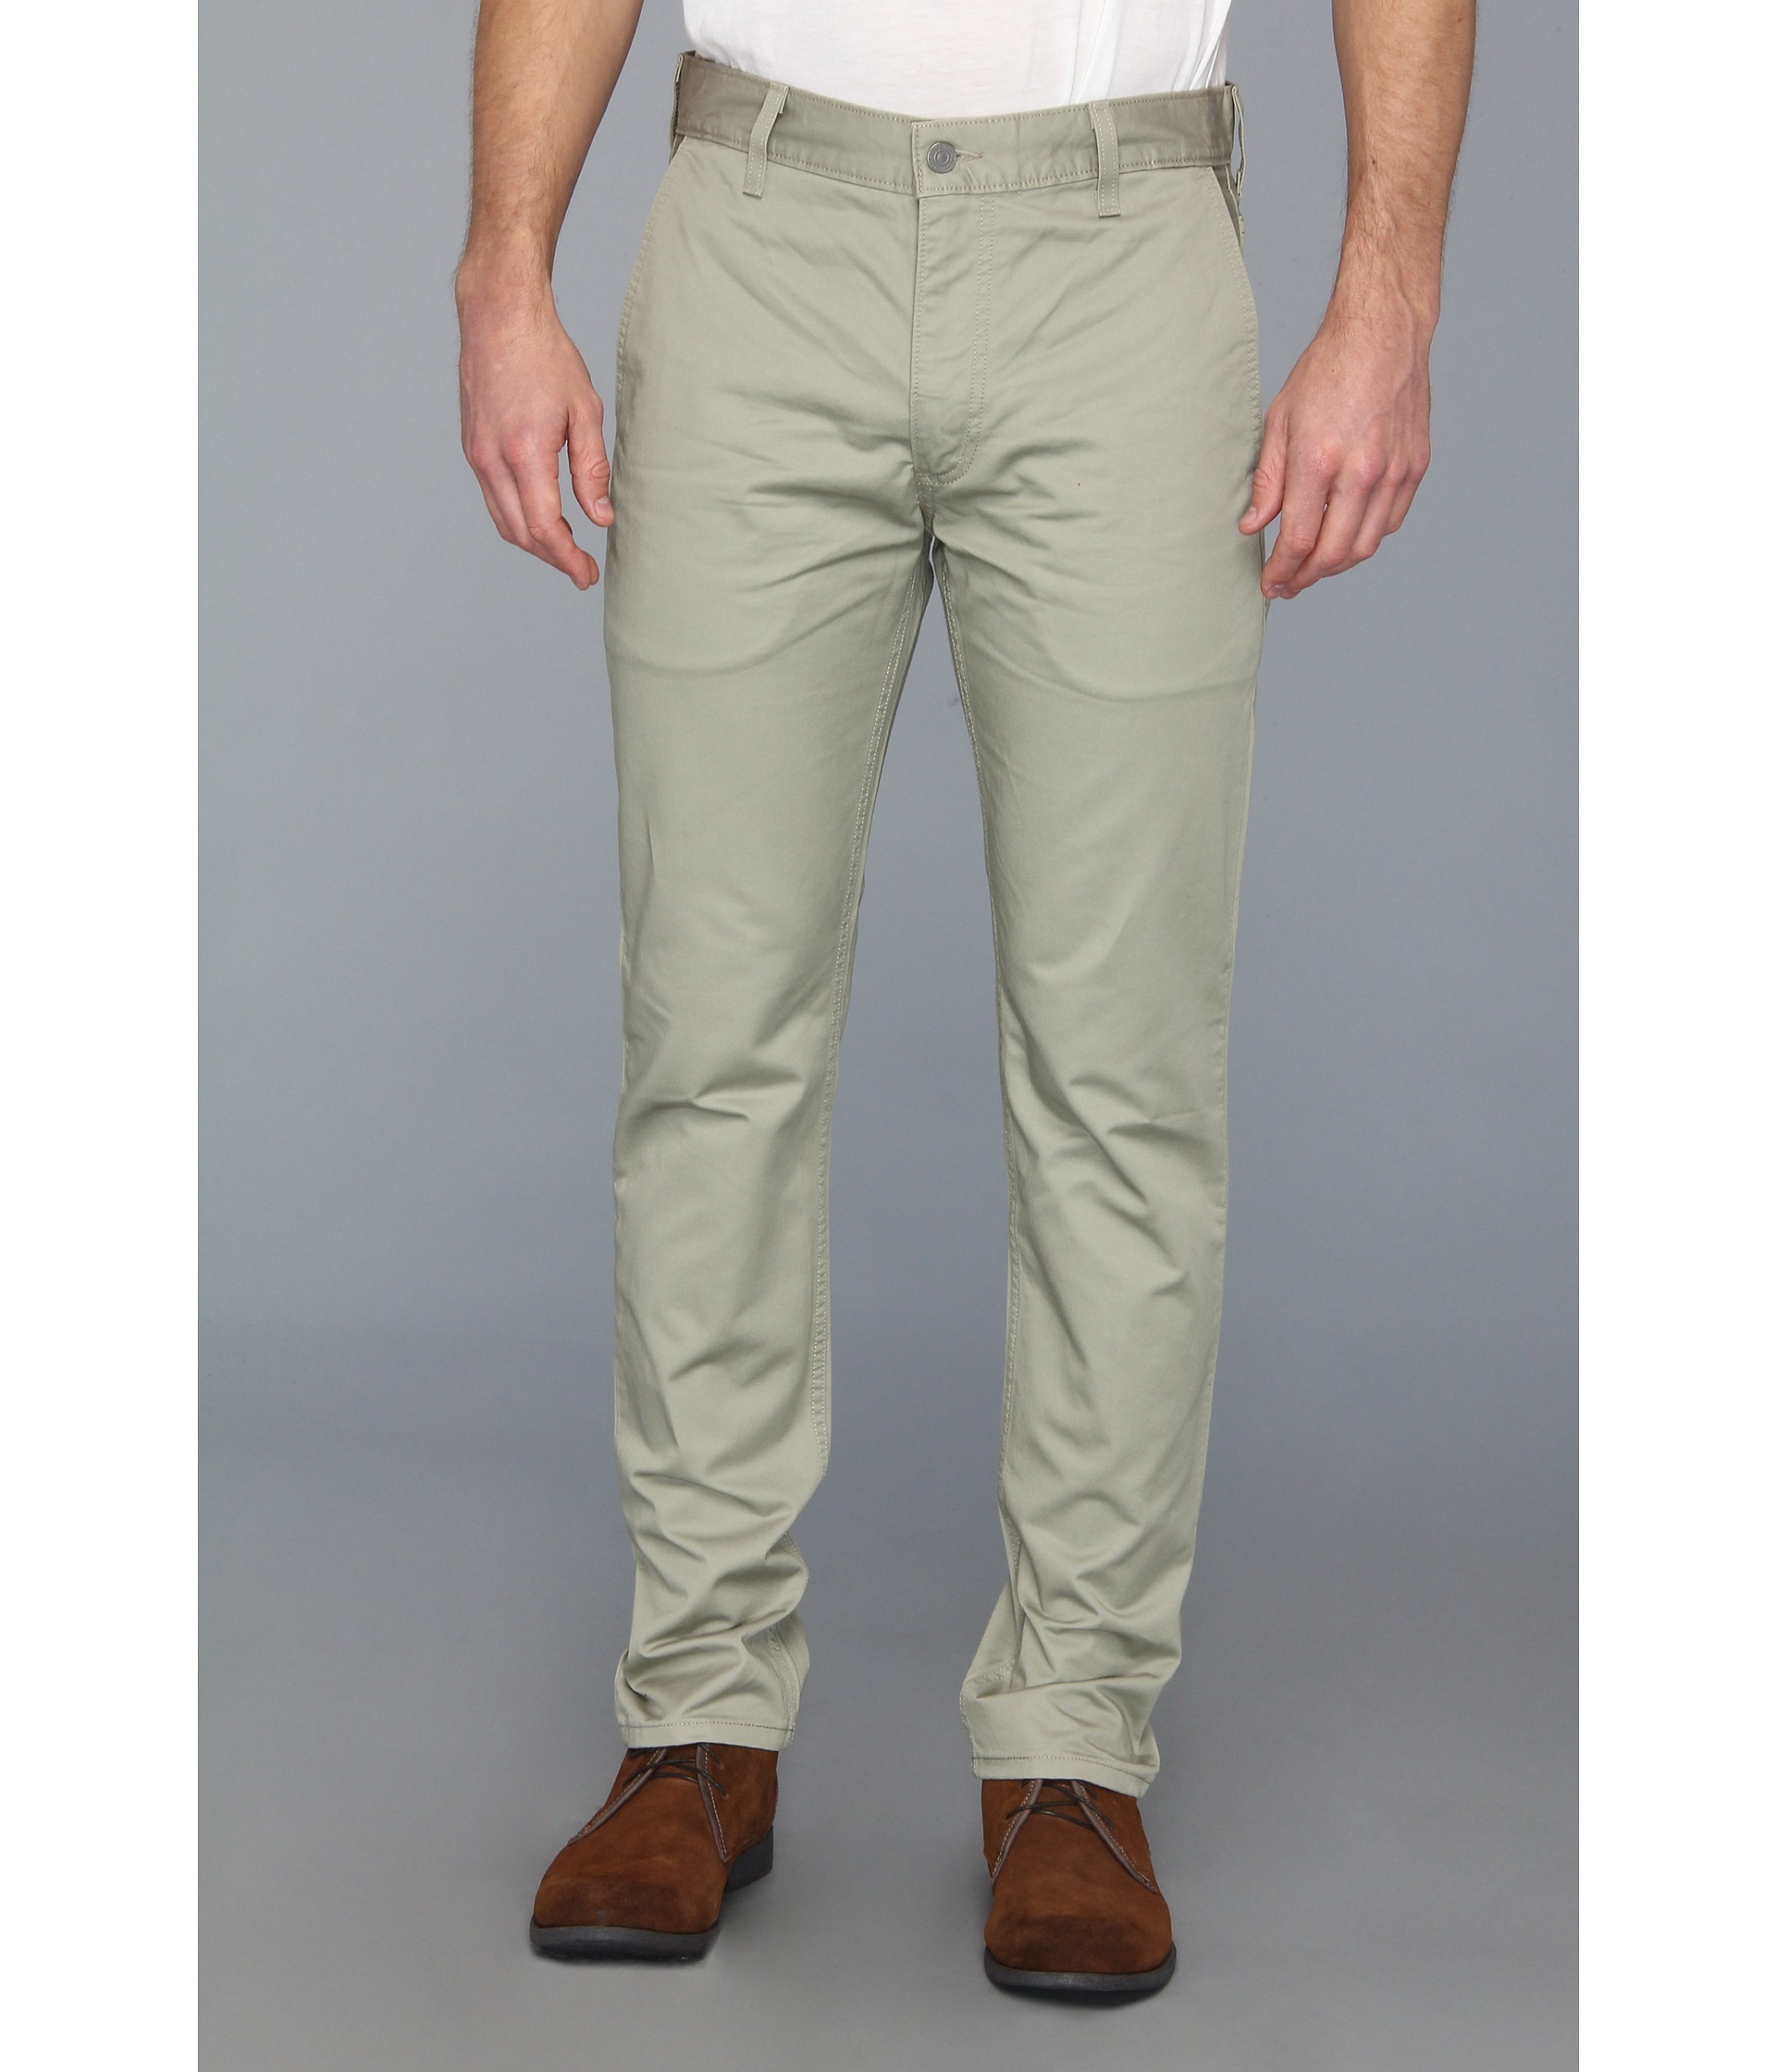 Levi's® Mens 511™ Slim/Skinny Fit - Hybrid Trouser